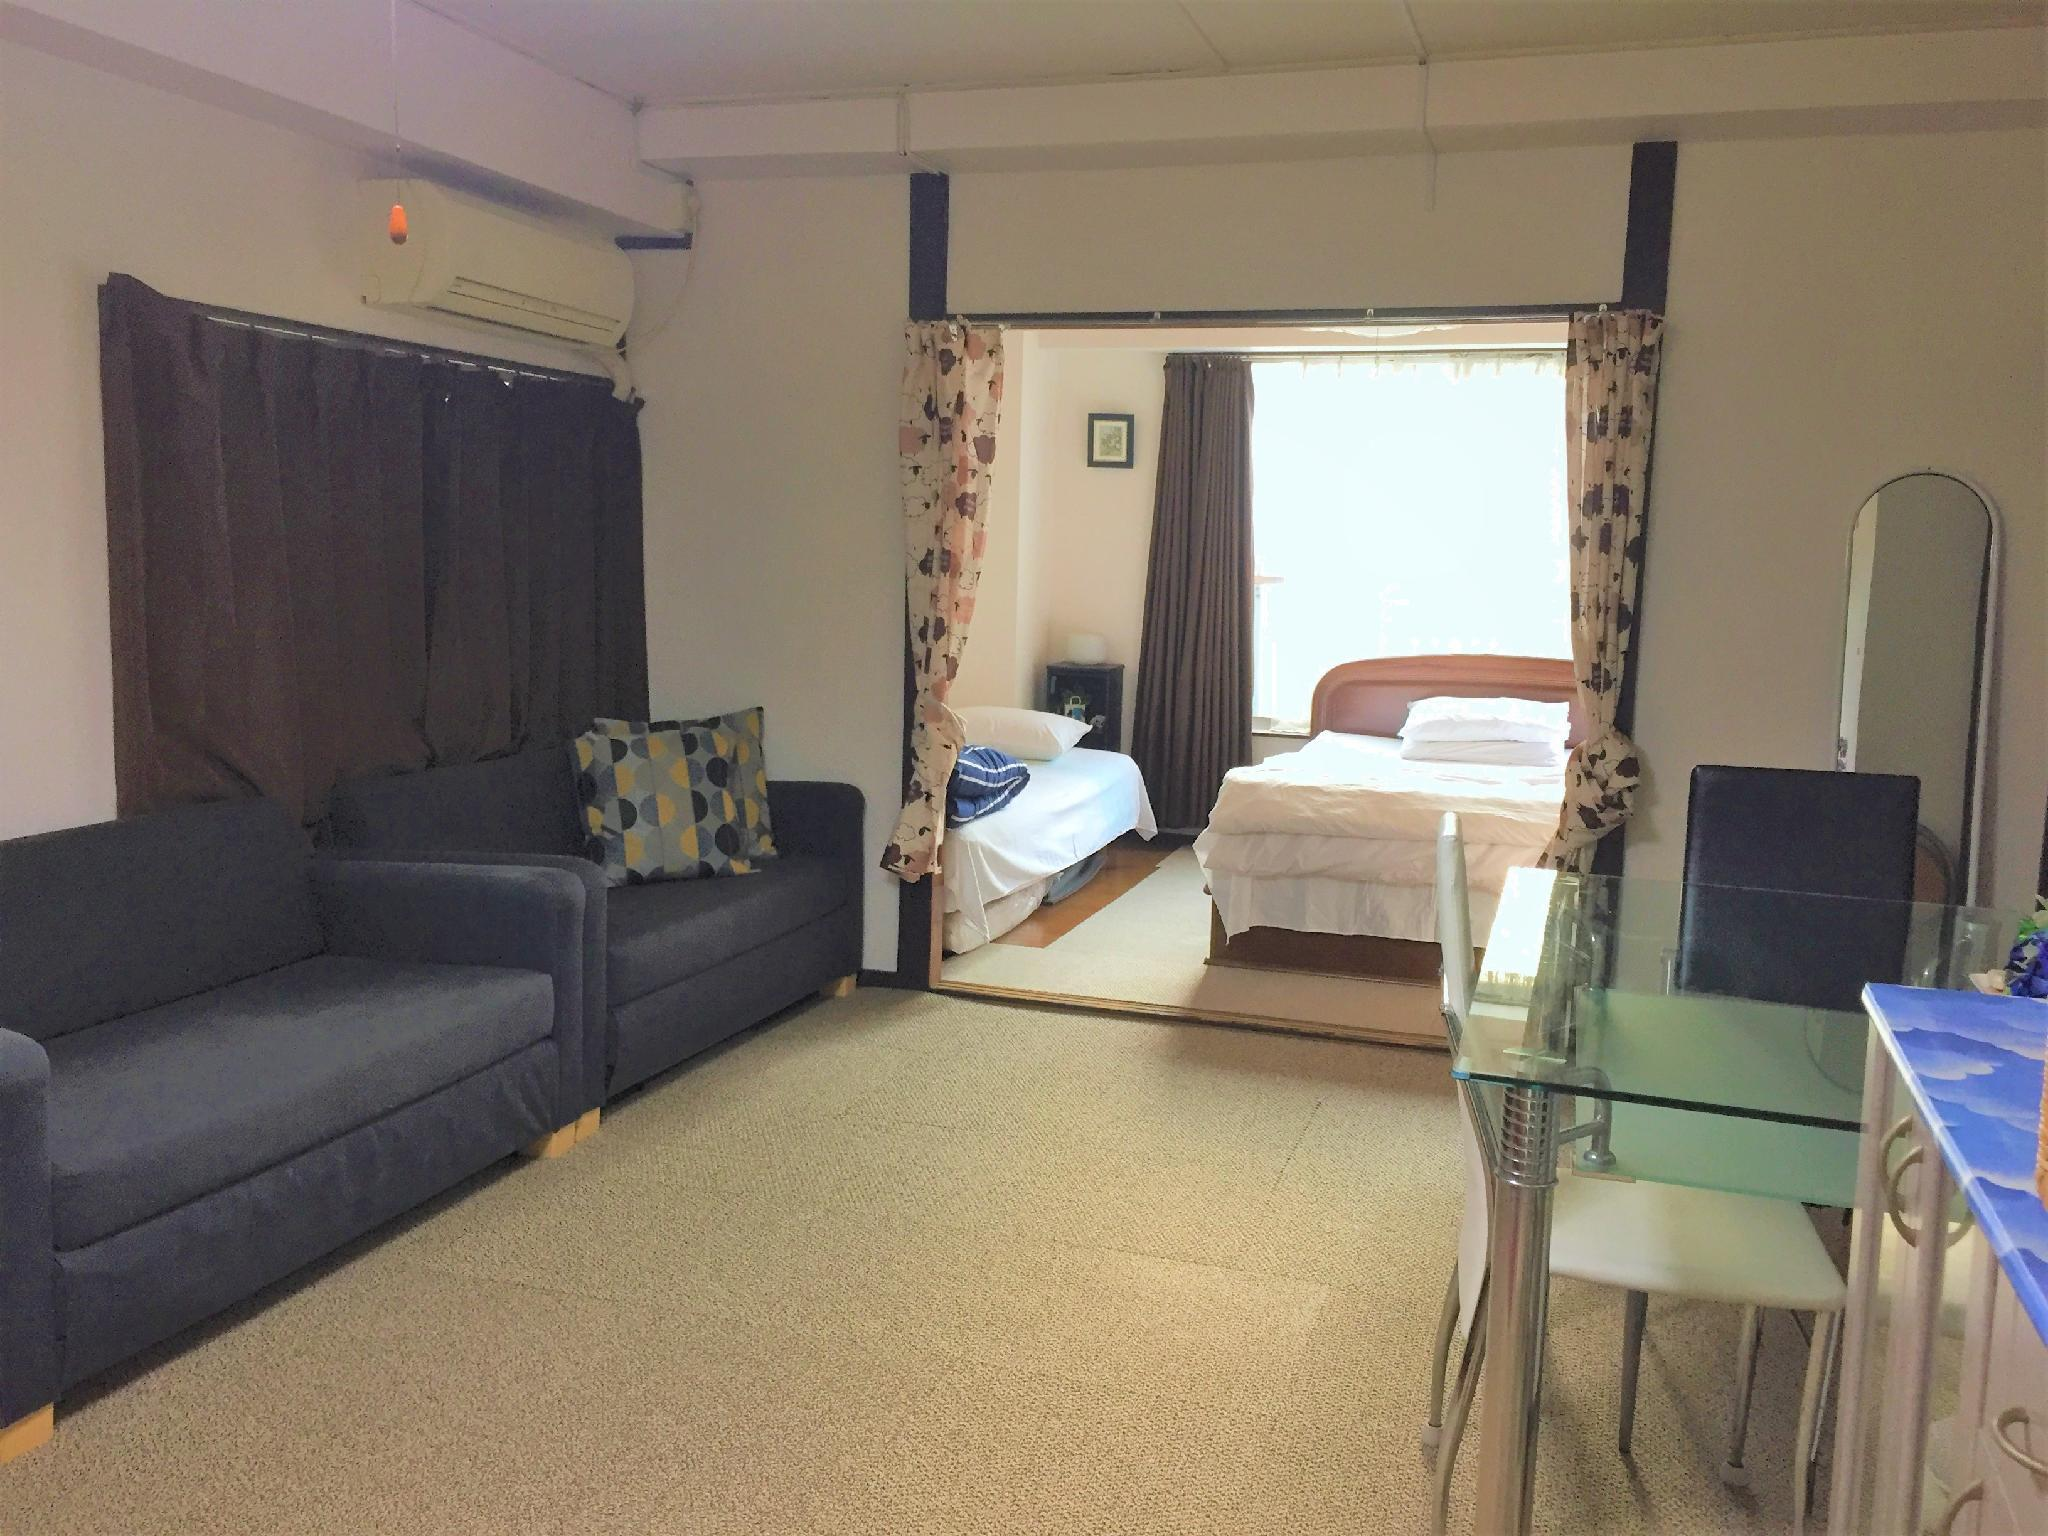 Ueno St. 10mins Metoro 3mins 3FL Whole Room Rent